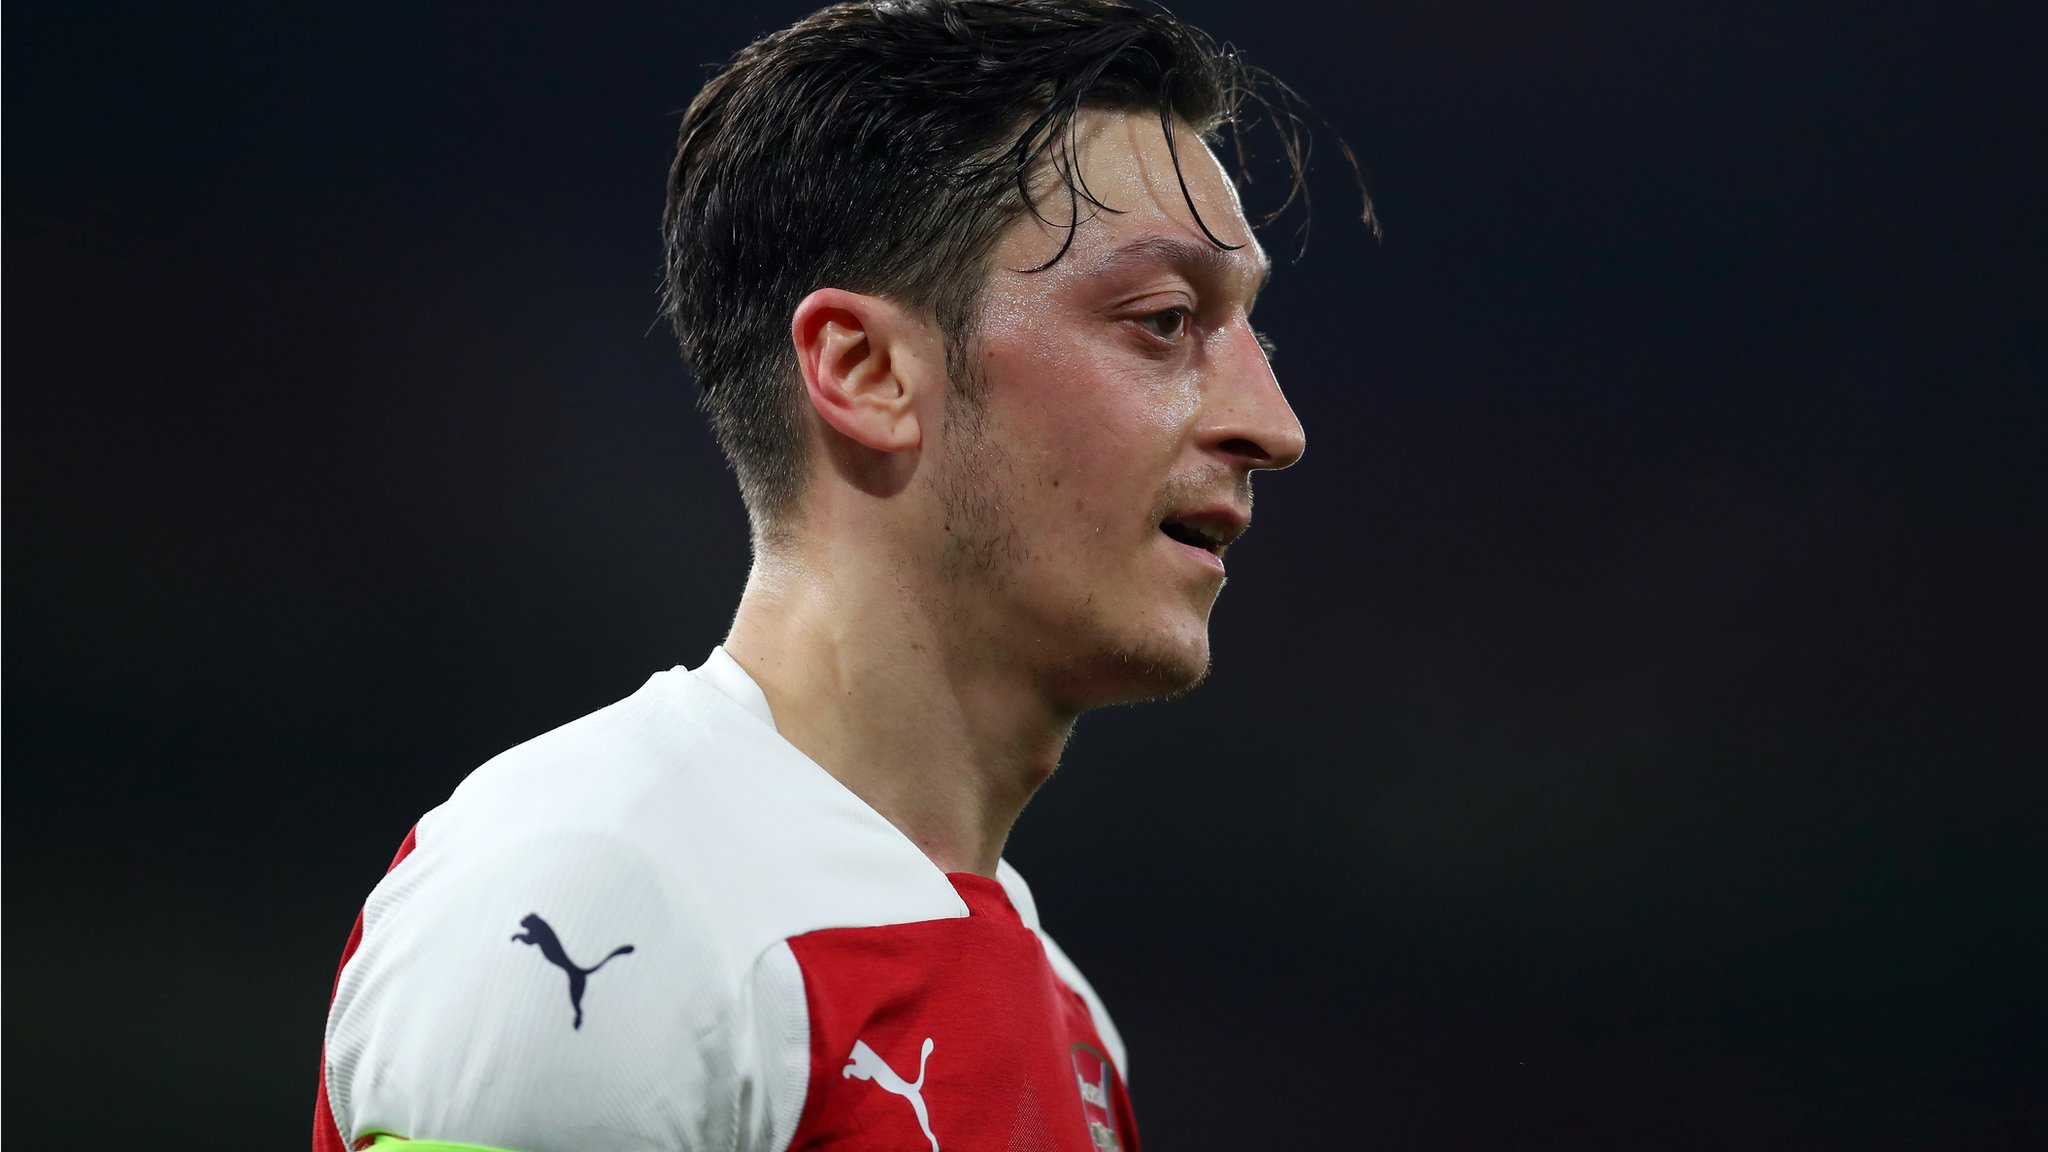 Mesut Ozil: Arsenal midfielder will be rotated, says Unai Emery